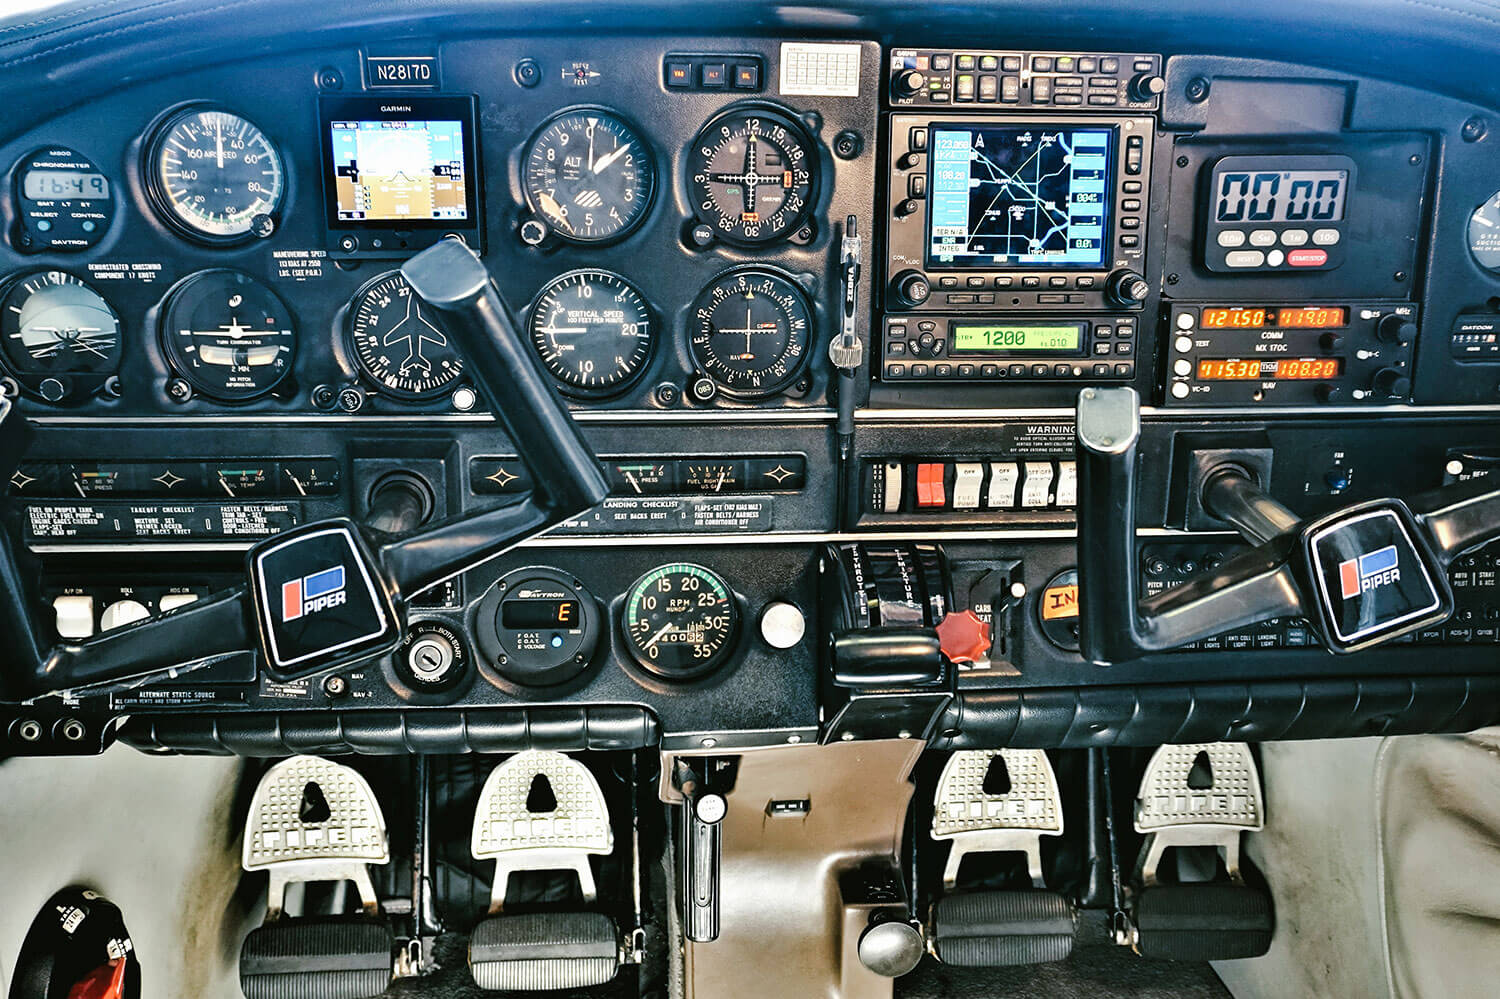 Blue-Skies-Flying-Services-Cockpit-Panel-Bluetooth-Piper-Archer-N2817D-Plane